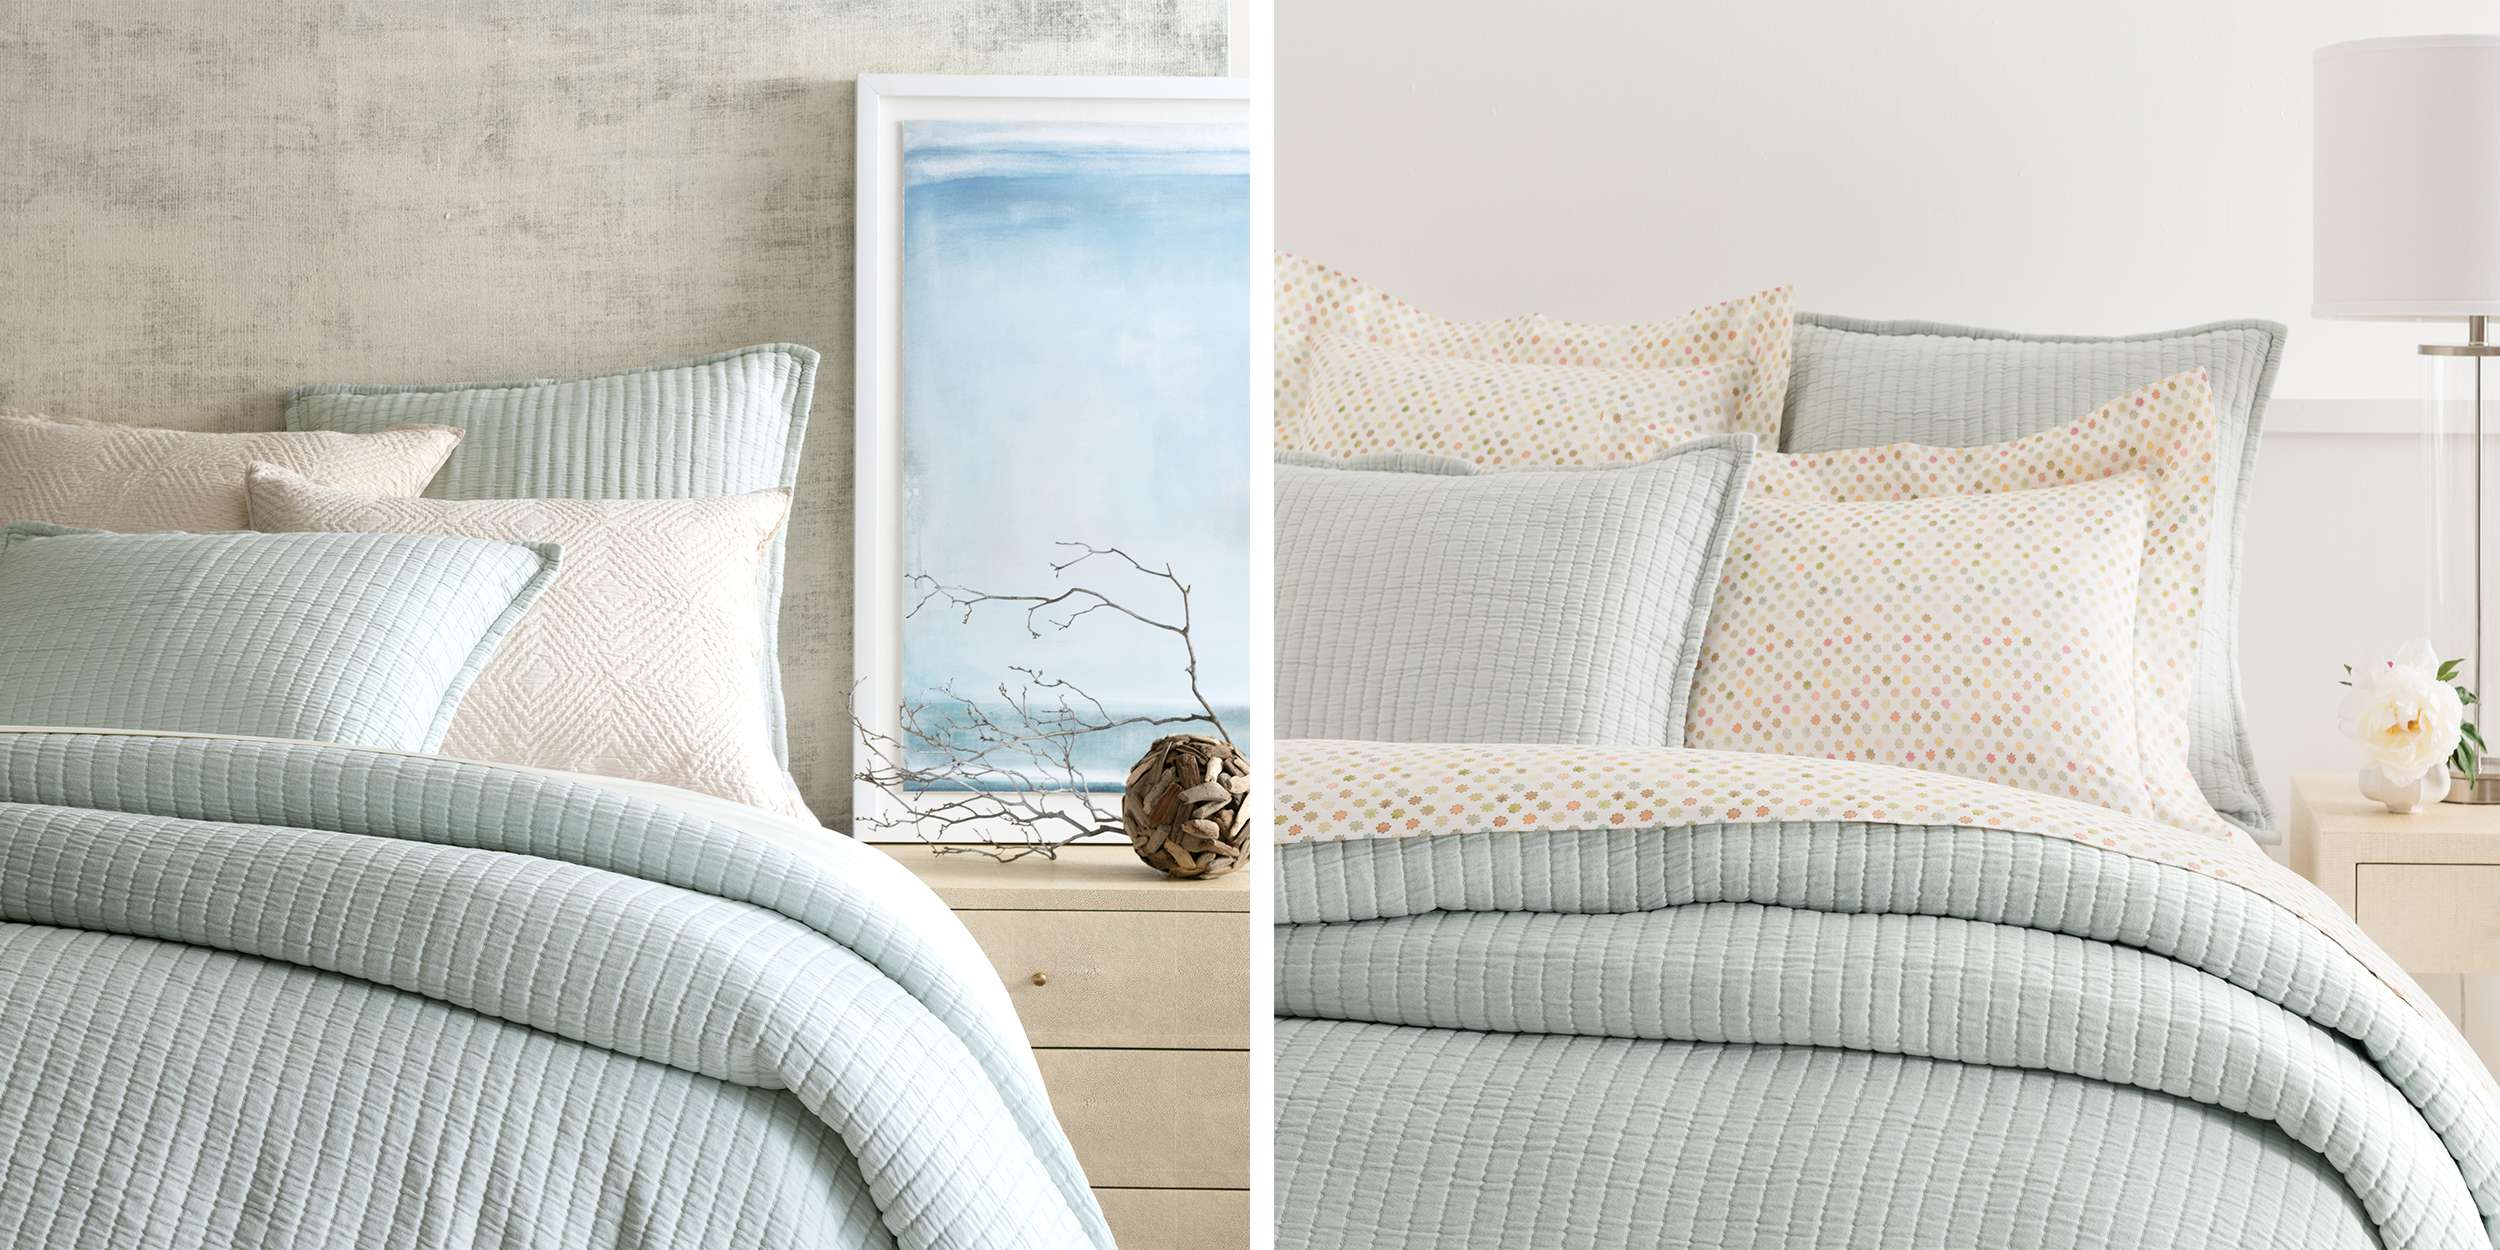 Decorative Bed Pillows Shams : Beducation 101: How to Refresh Your Bed with Decorative Pillows and Shams Annie Selke